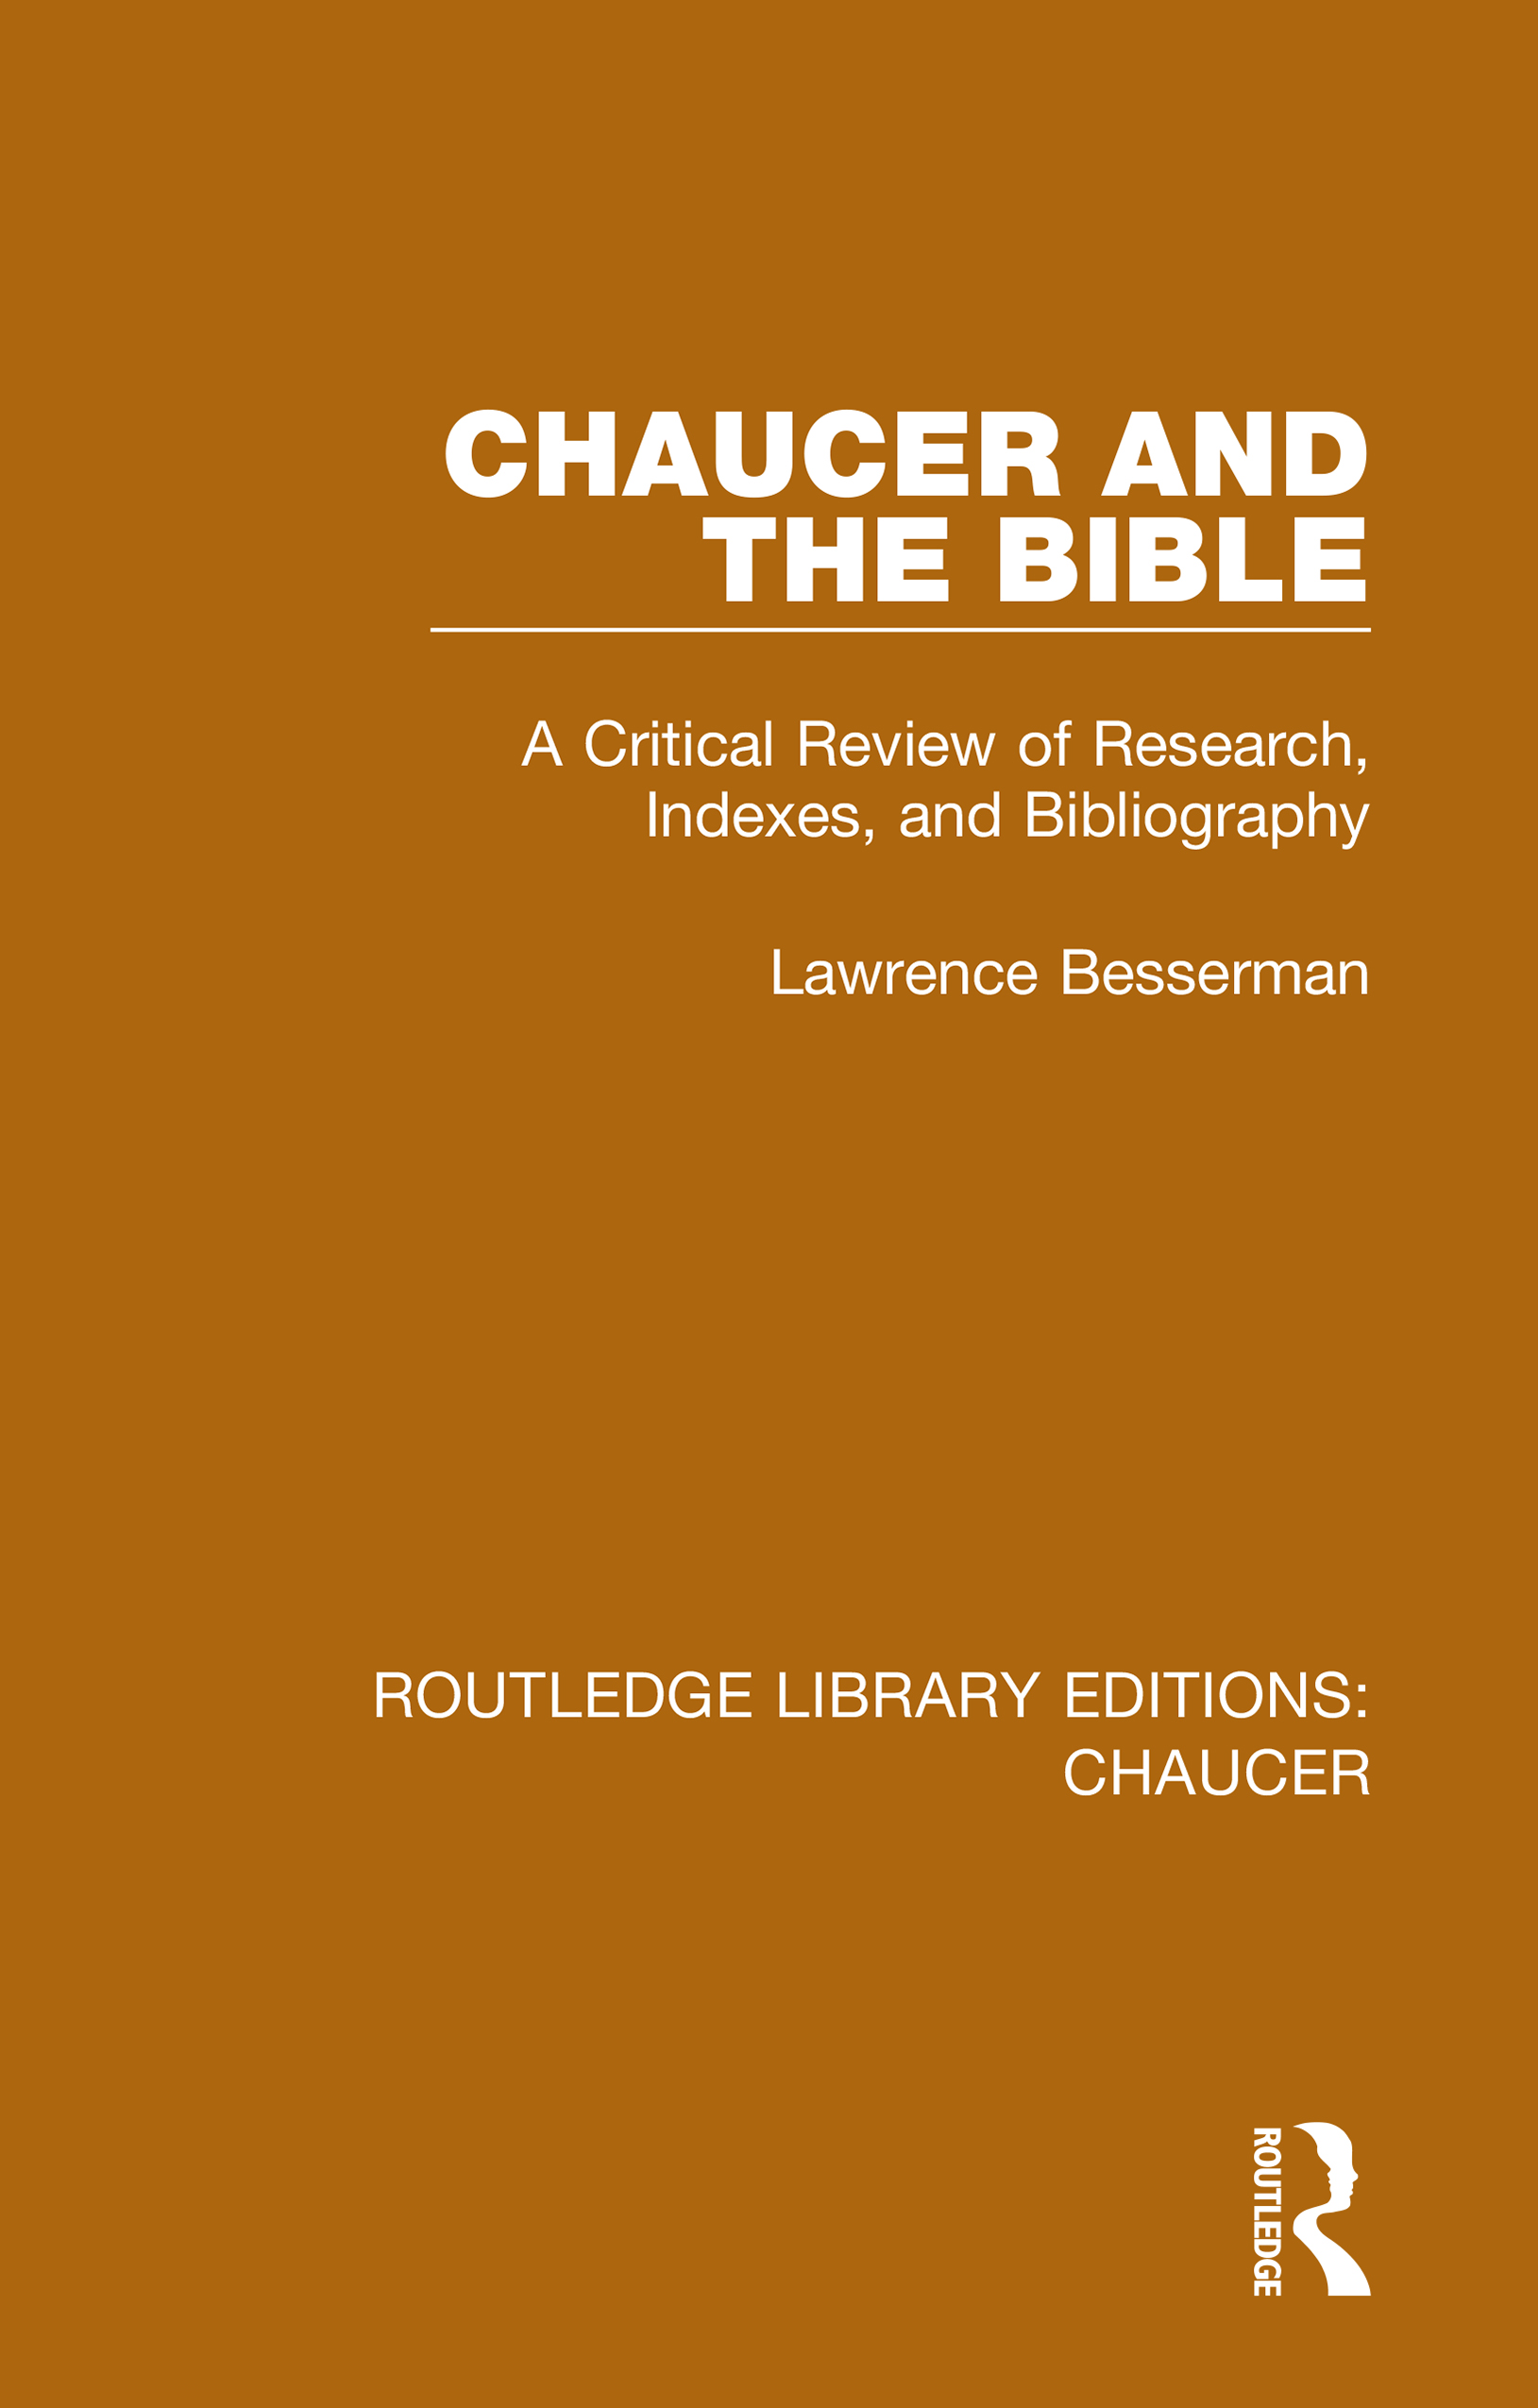 Chaucer and the Bible